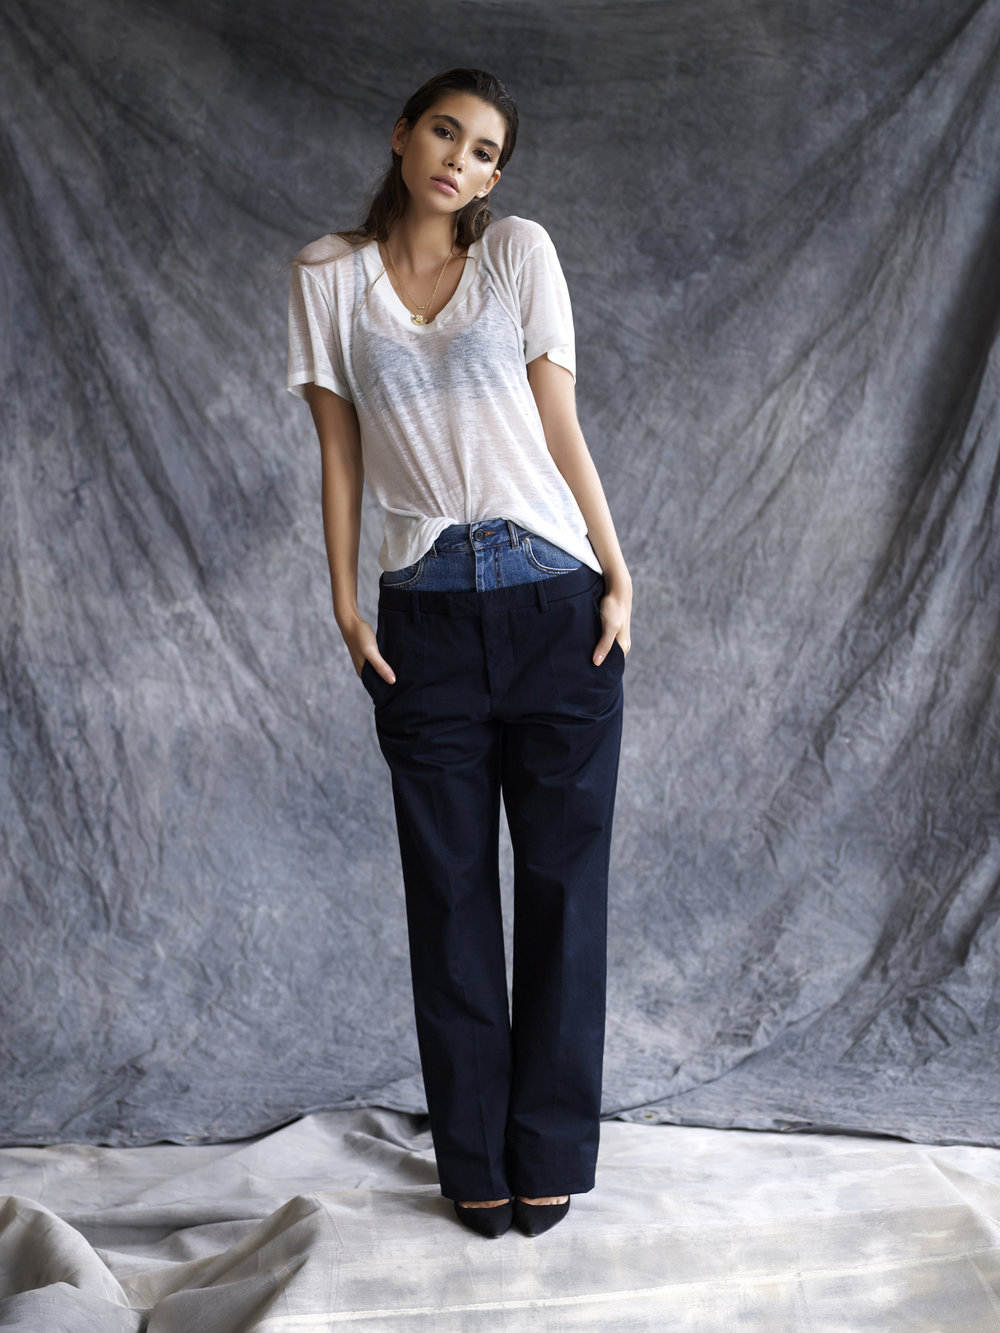 Cindy wears  a  WCAGA  vintage t-shirt,  Maison Margiela  pants,  Manolo Blahnik BB Pumps, Halleh  necklaces and earrings.